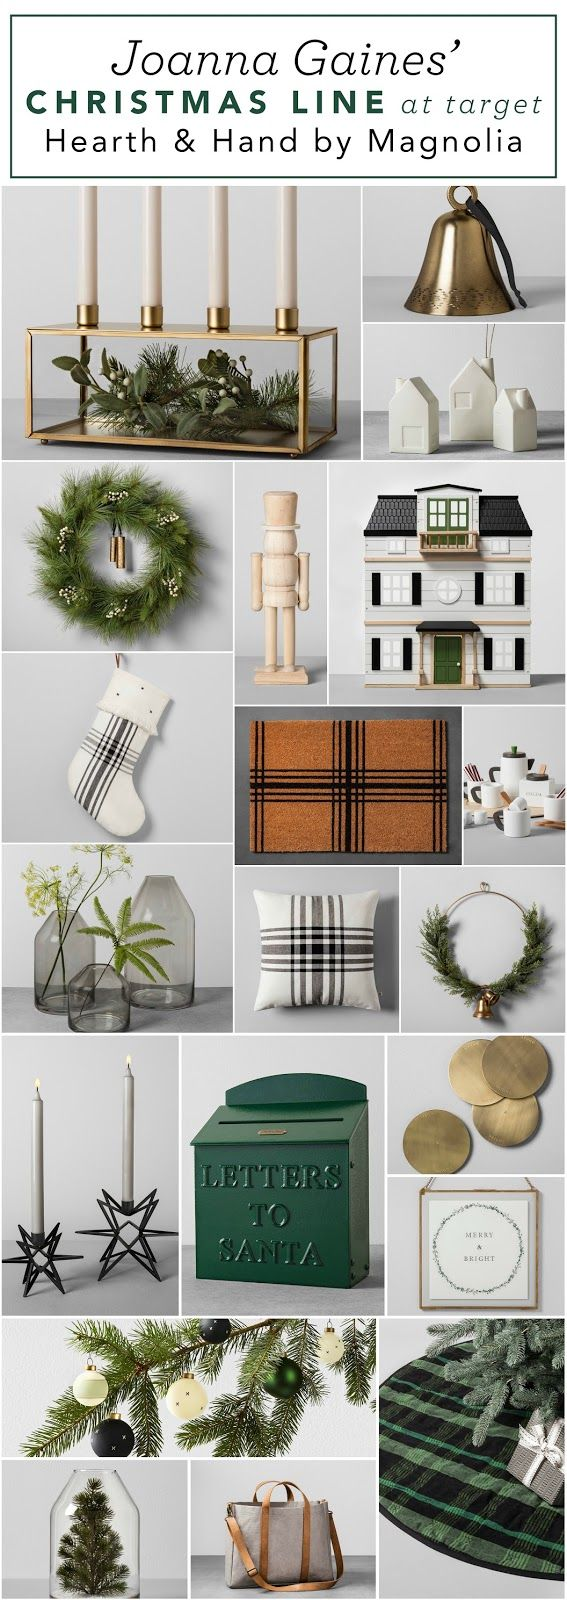 463 Best Christmas Decor Images On Pinterest Christmas